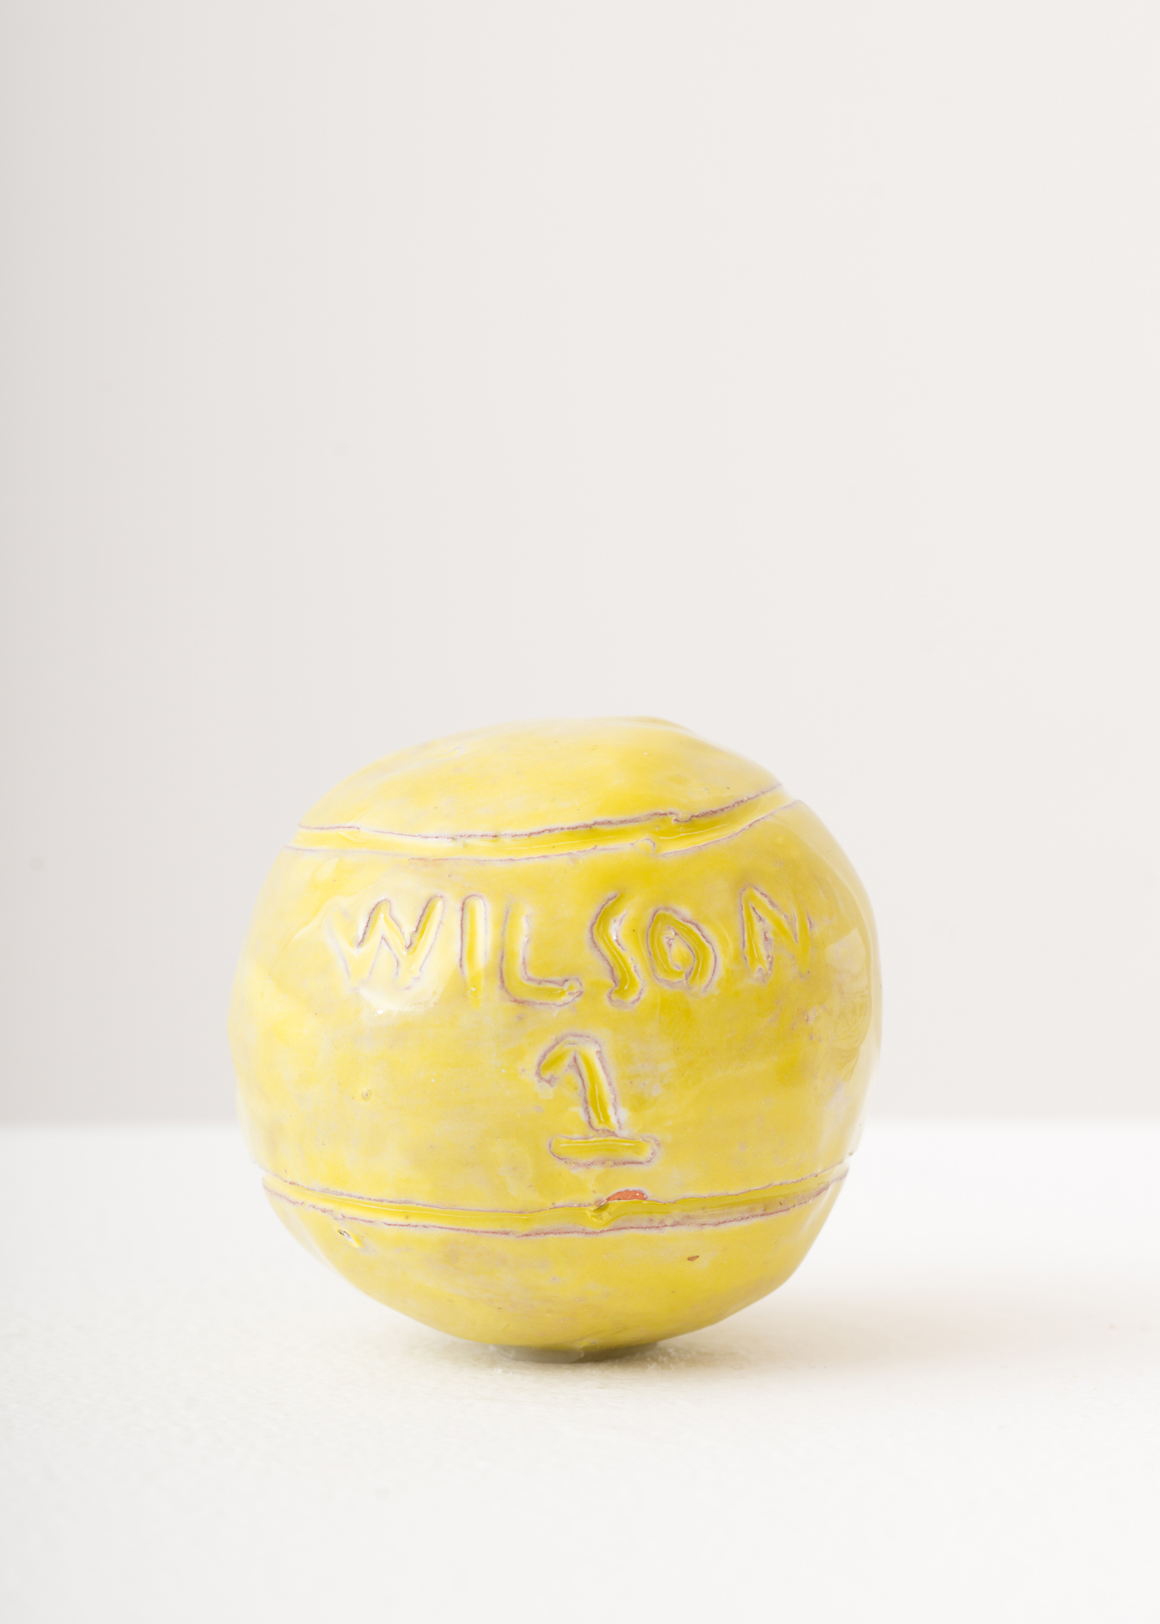 "<p><em>Balls</em><span class='media'>Earthenware, Glaze</span>Estimated 2.75"" x 2.75""<br>Edition of Edition of 20<br>2018<br><a class='inquire' href='mailto:info@gildargallery.com?subject=Artwork Inquiry SKAN0041&body=I am interested in finding out more about Balls by Stephanie Kantor'>Inquire</a></p>"